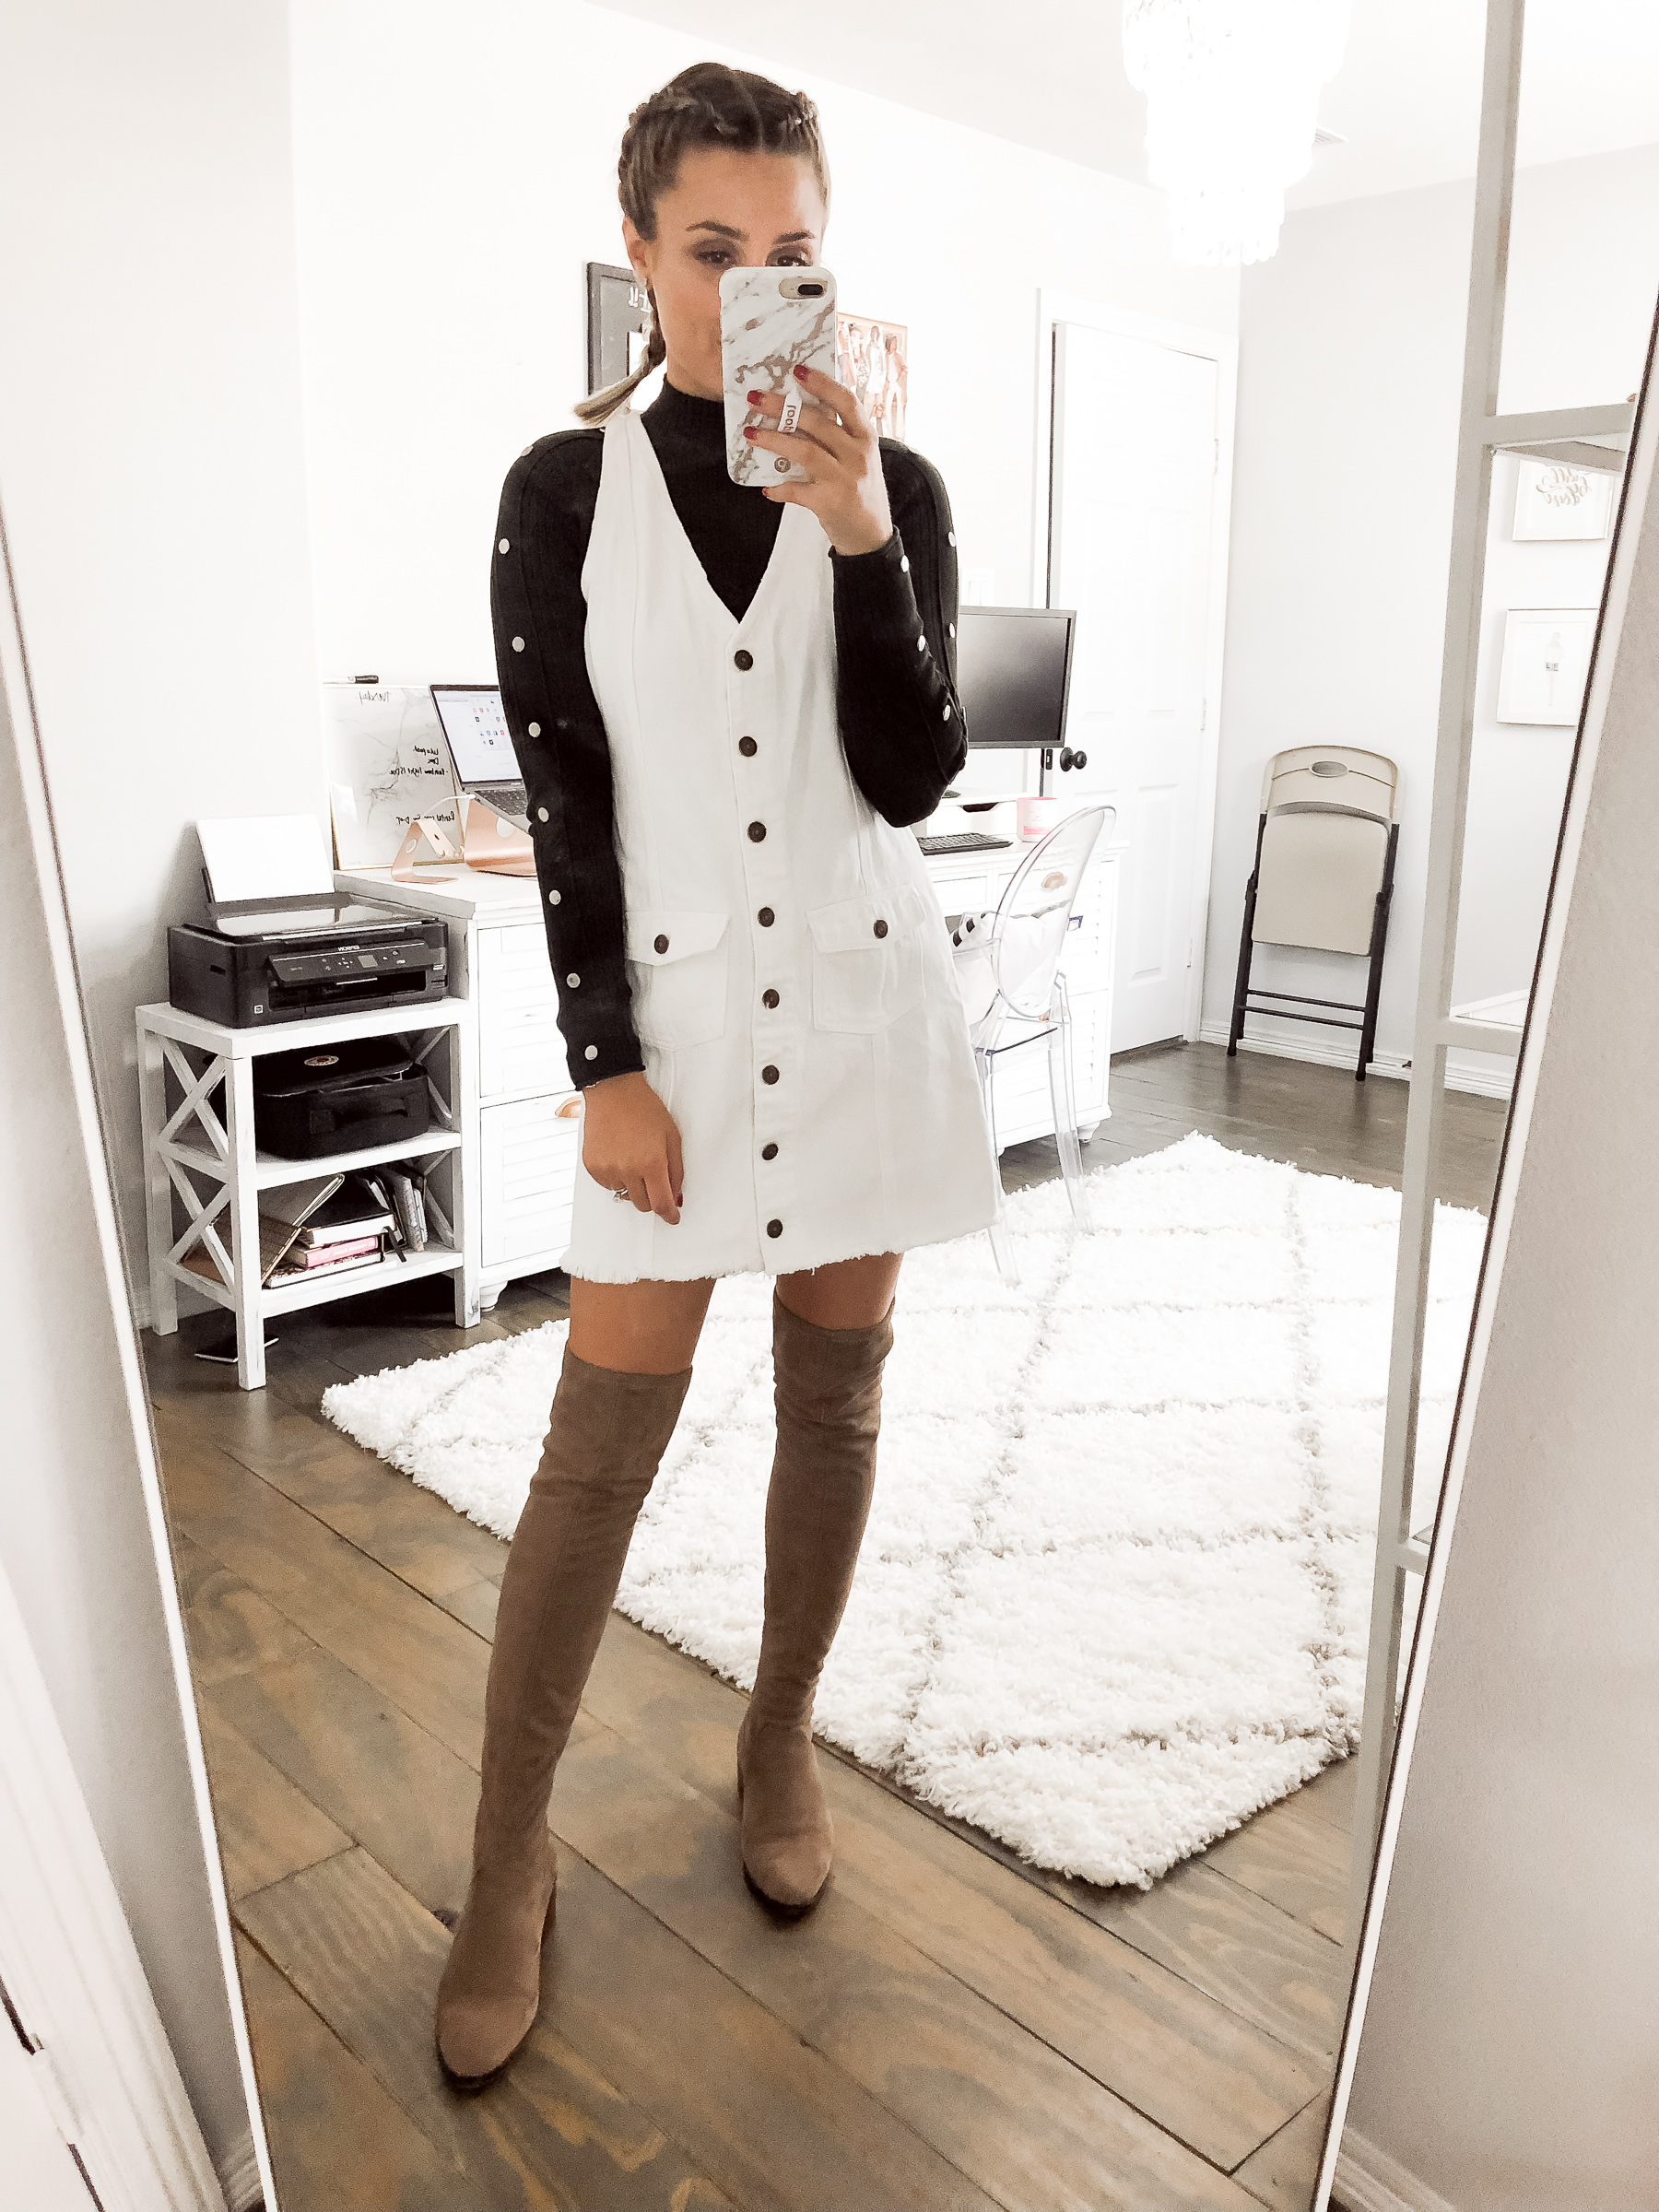 Houston fashion blogger Uptown with Elly Brown wears a white denim button up dress